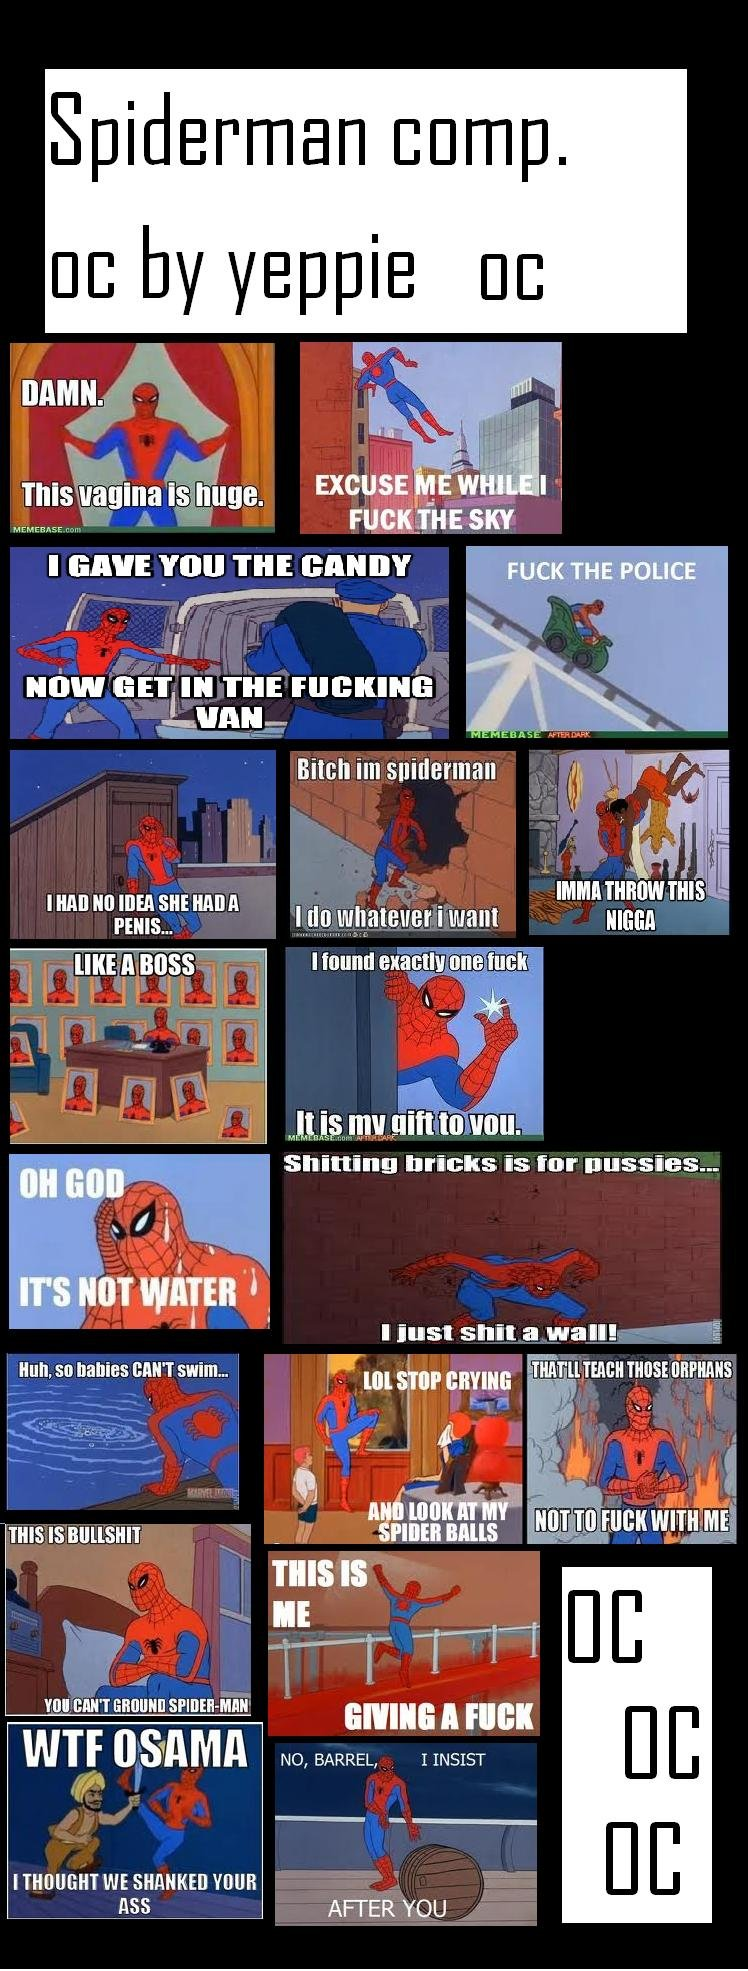 """Spiderman comp.. This took like a year. ctw. til .re I GAVE TIMI THE GENE? FUCK THE ' How mar"""" III THE Eur. - Hitch inn 1. litte n BOSS I Intact) ) t Shining br"""